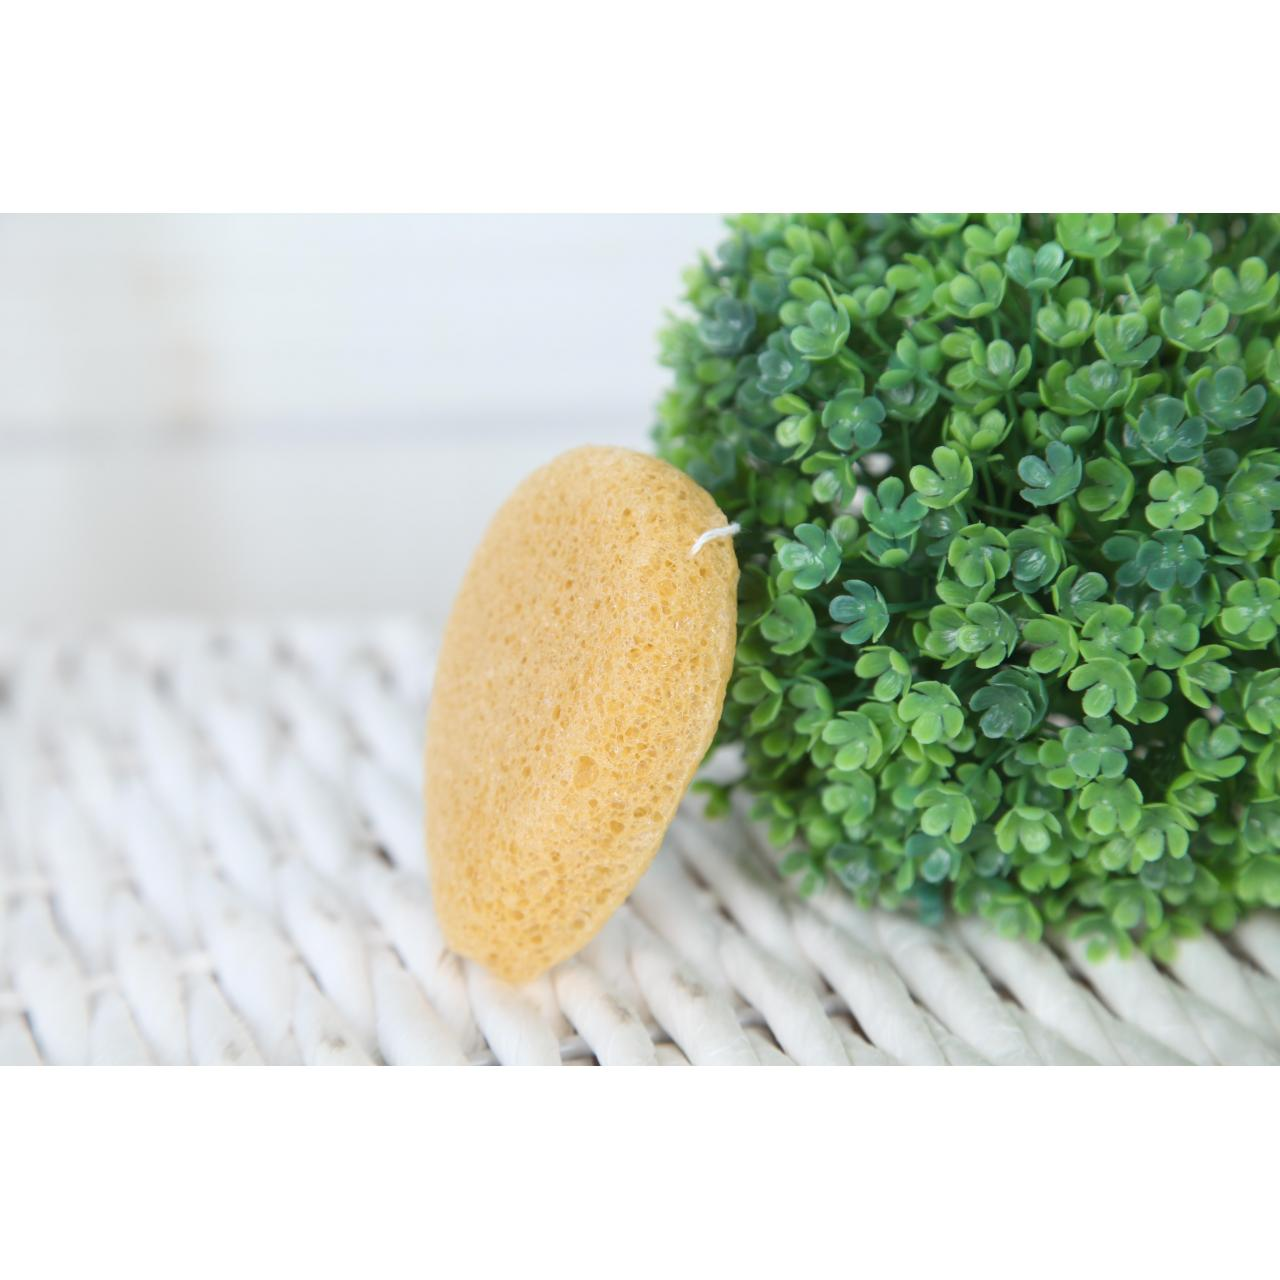 Water drop shape-Lemon konjac sponge